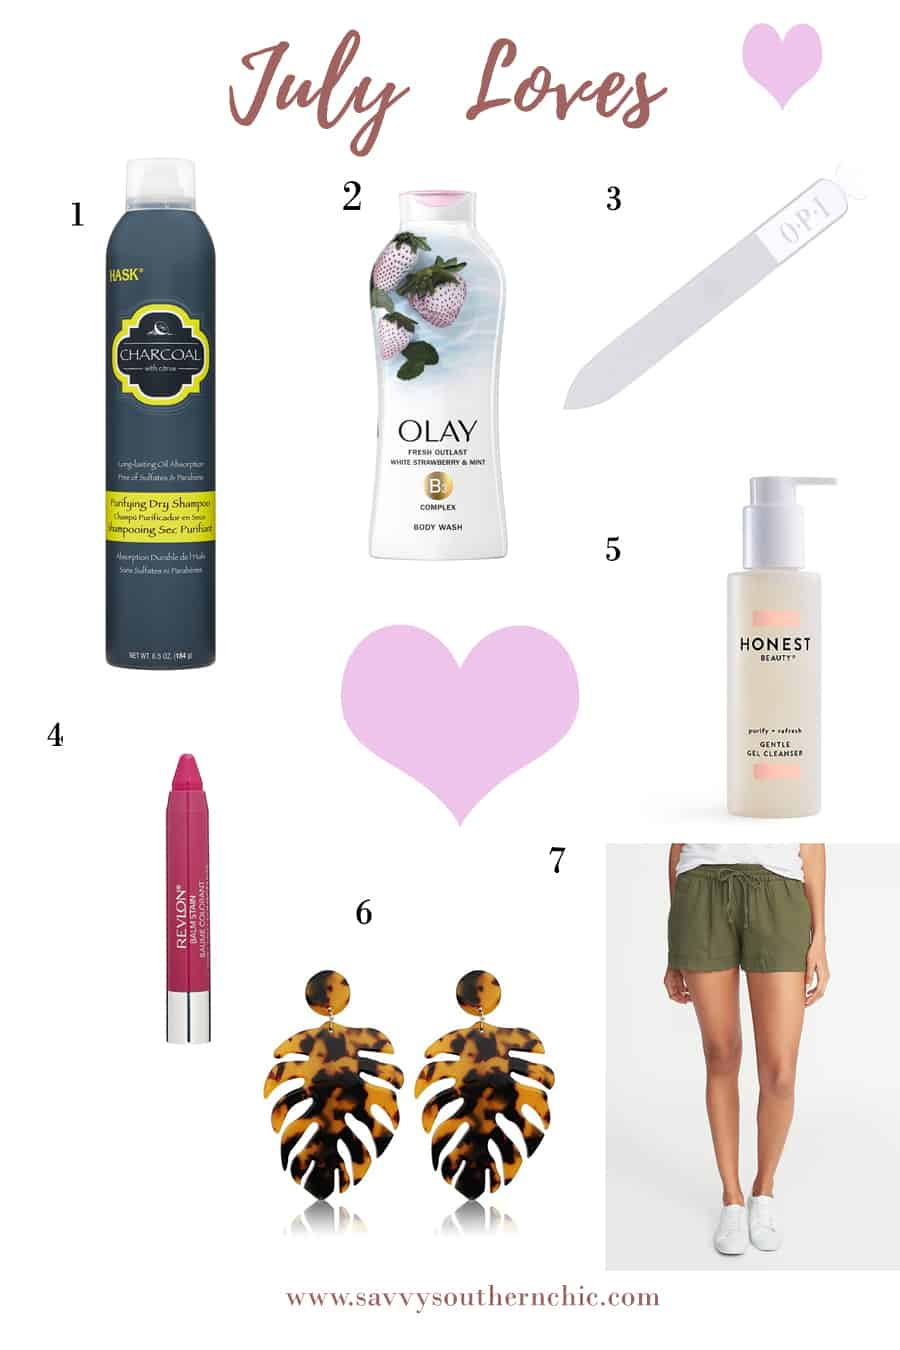 Favorite products for July